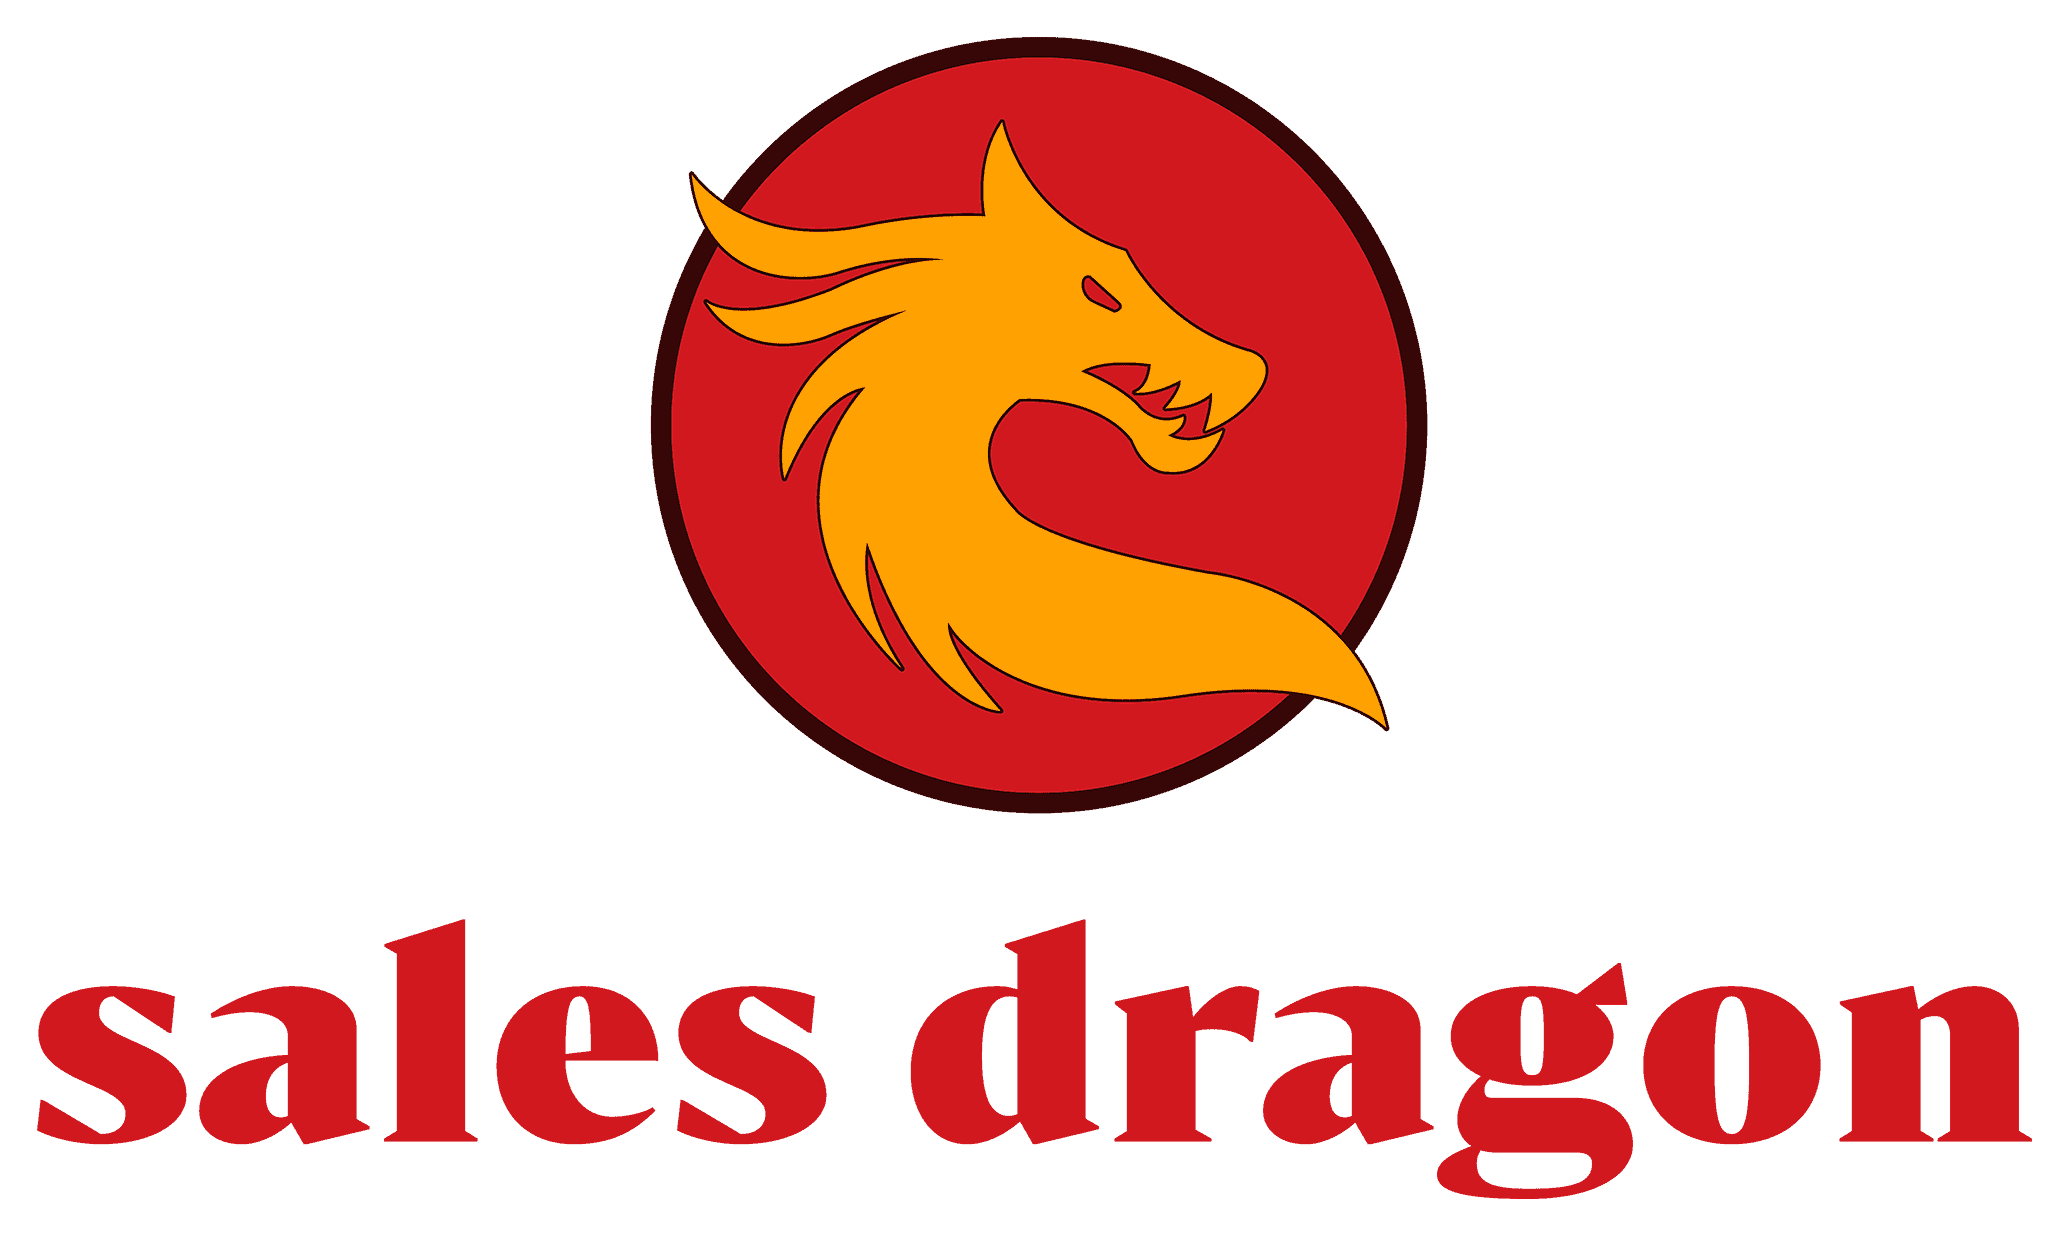 sales dragon